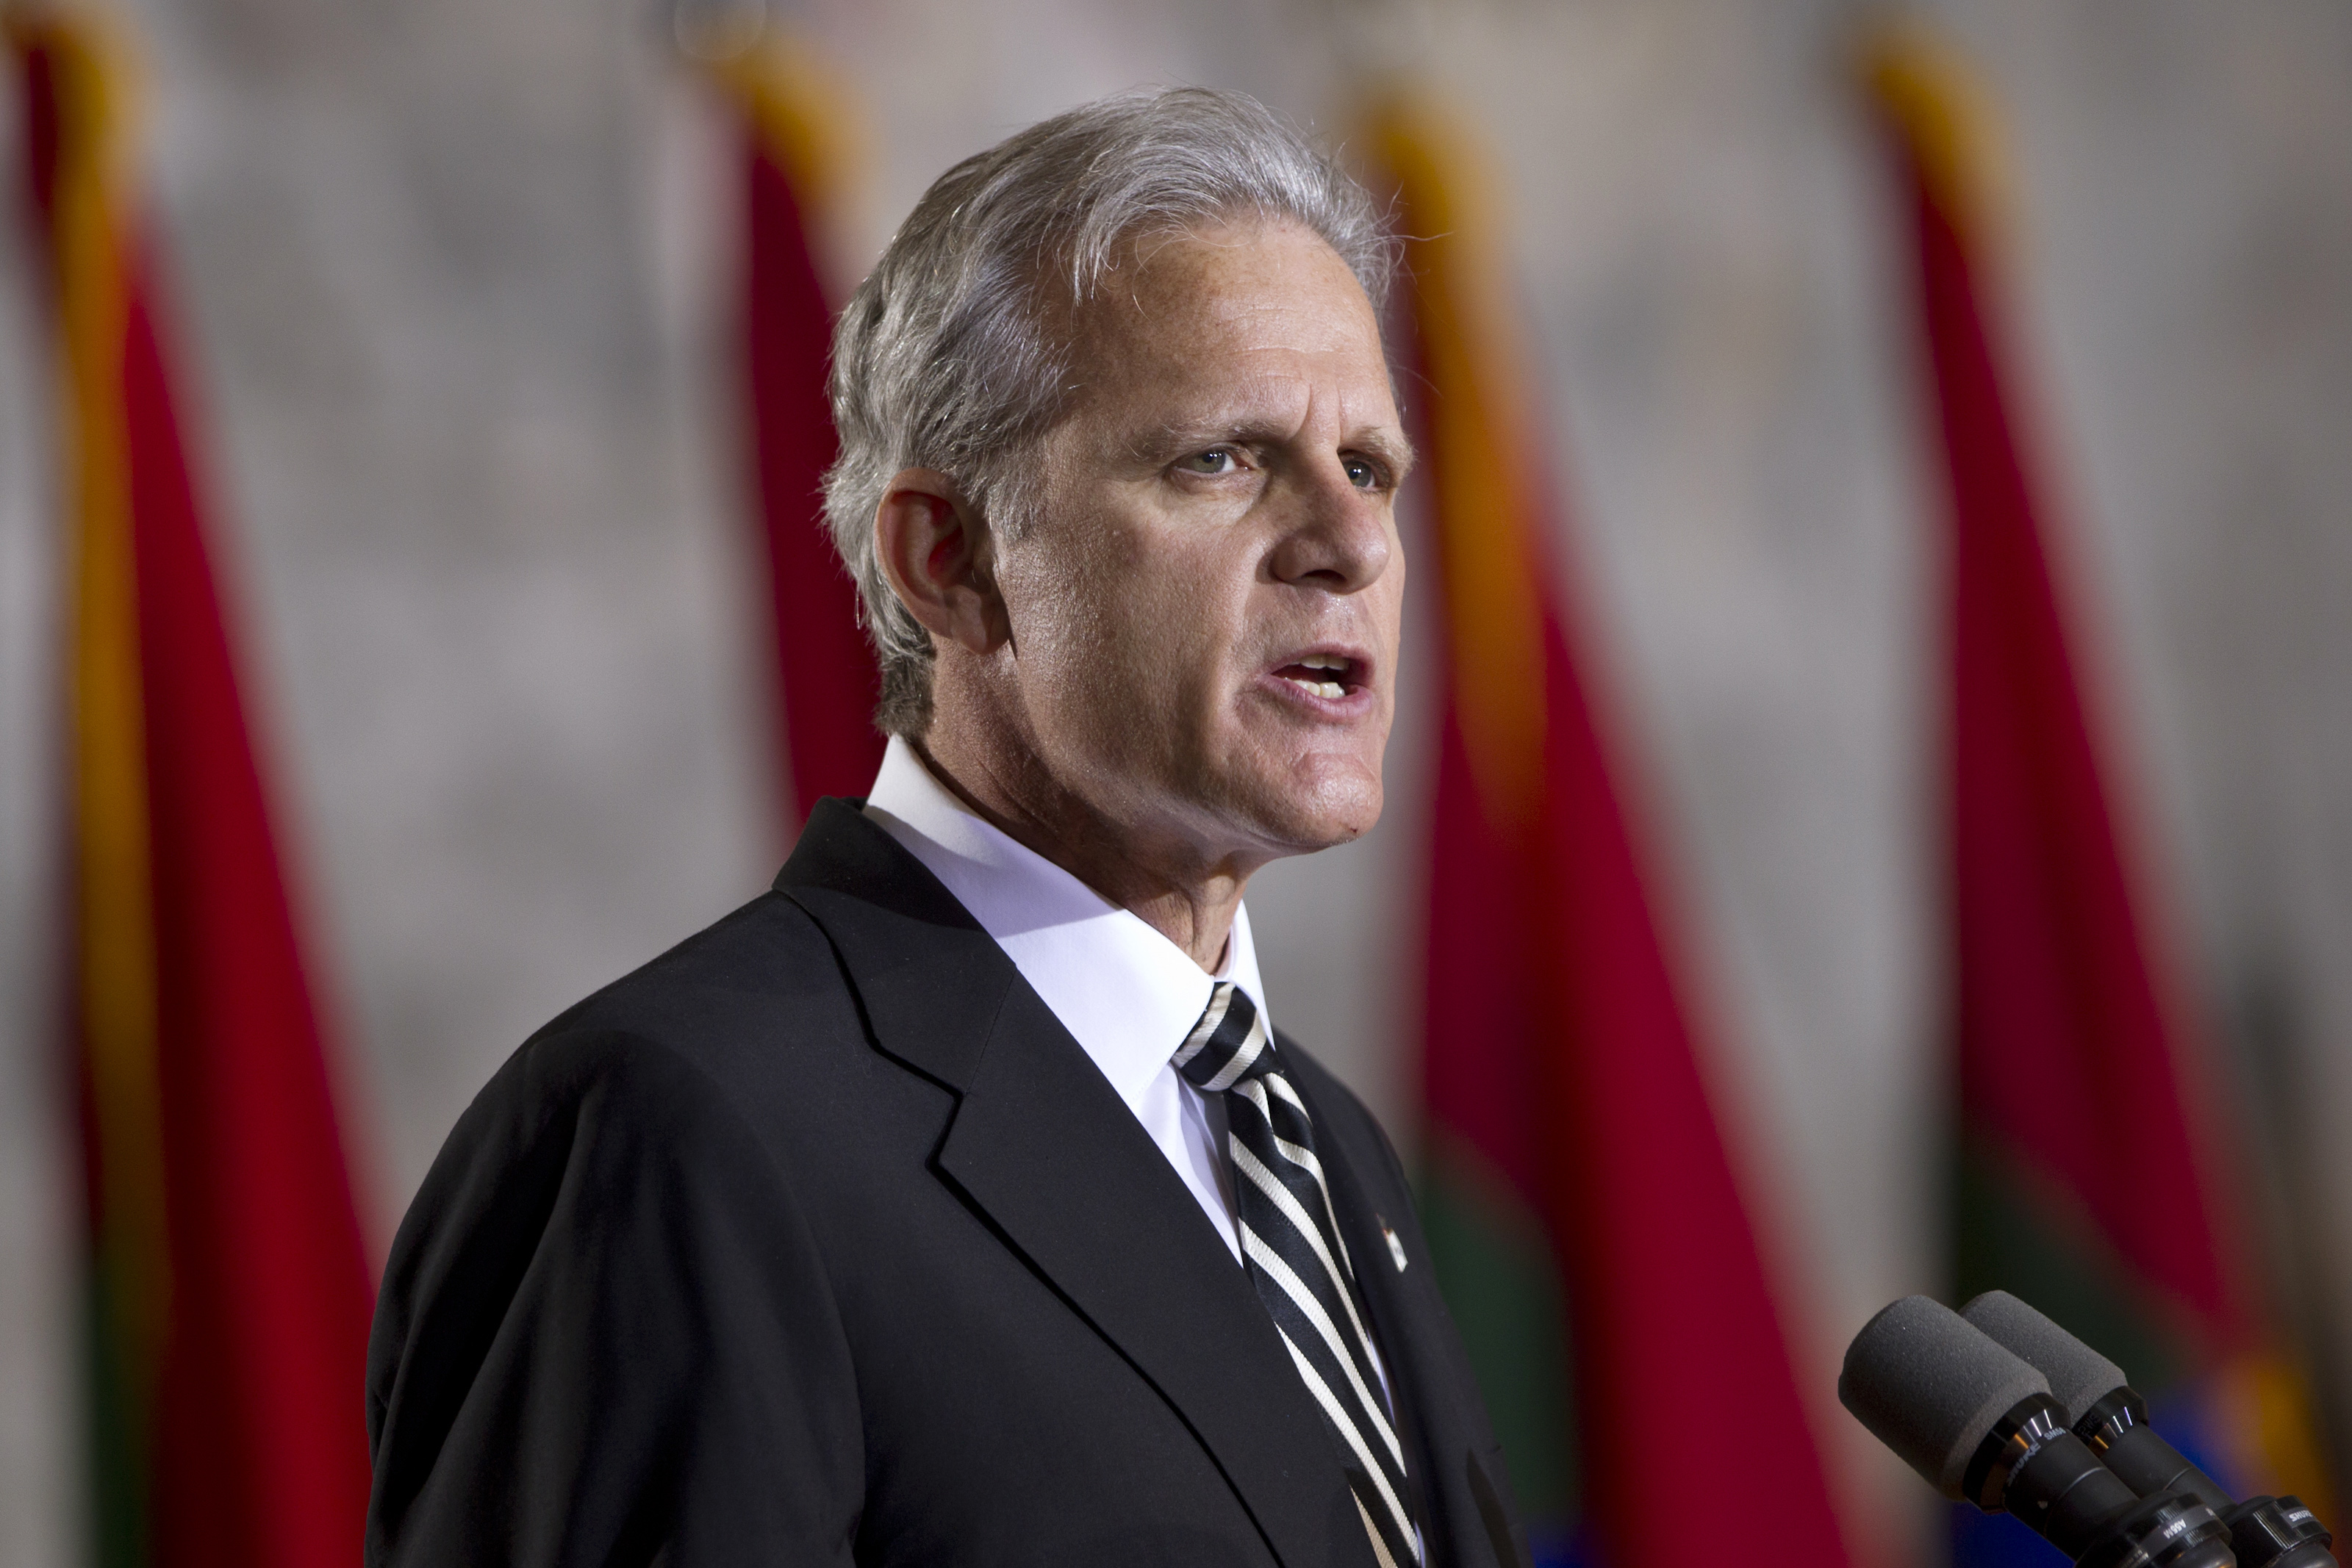 Ambassador of Israel to the United States Michael B. Oren speaks during an event to commemorate Holocaust victims and survivors in the Capitol Rotunda in Washington